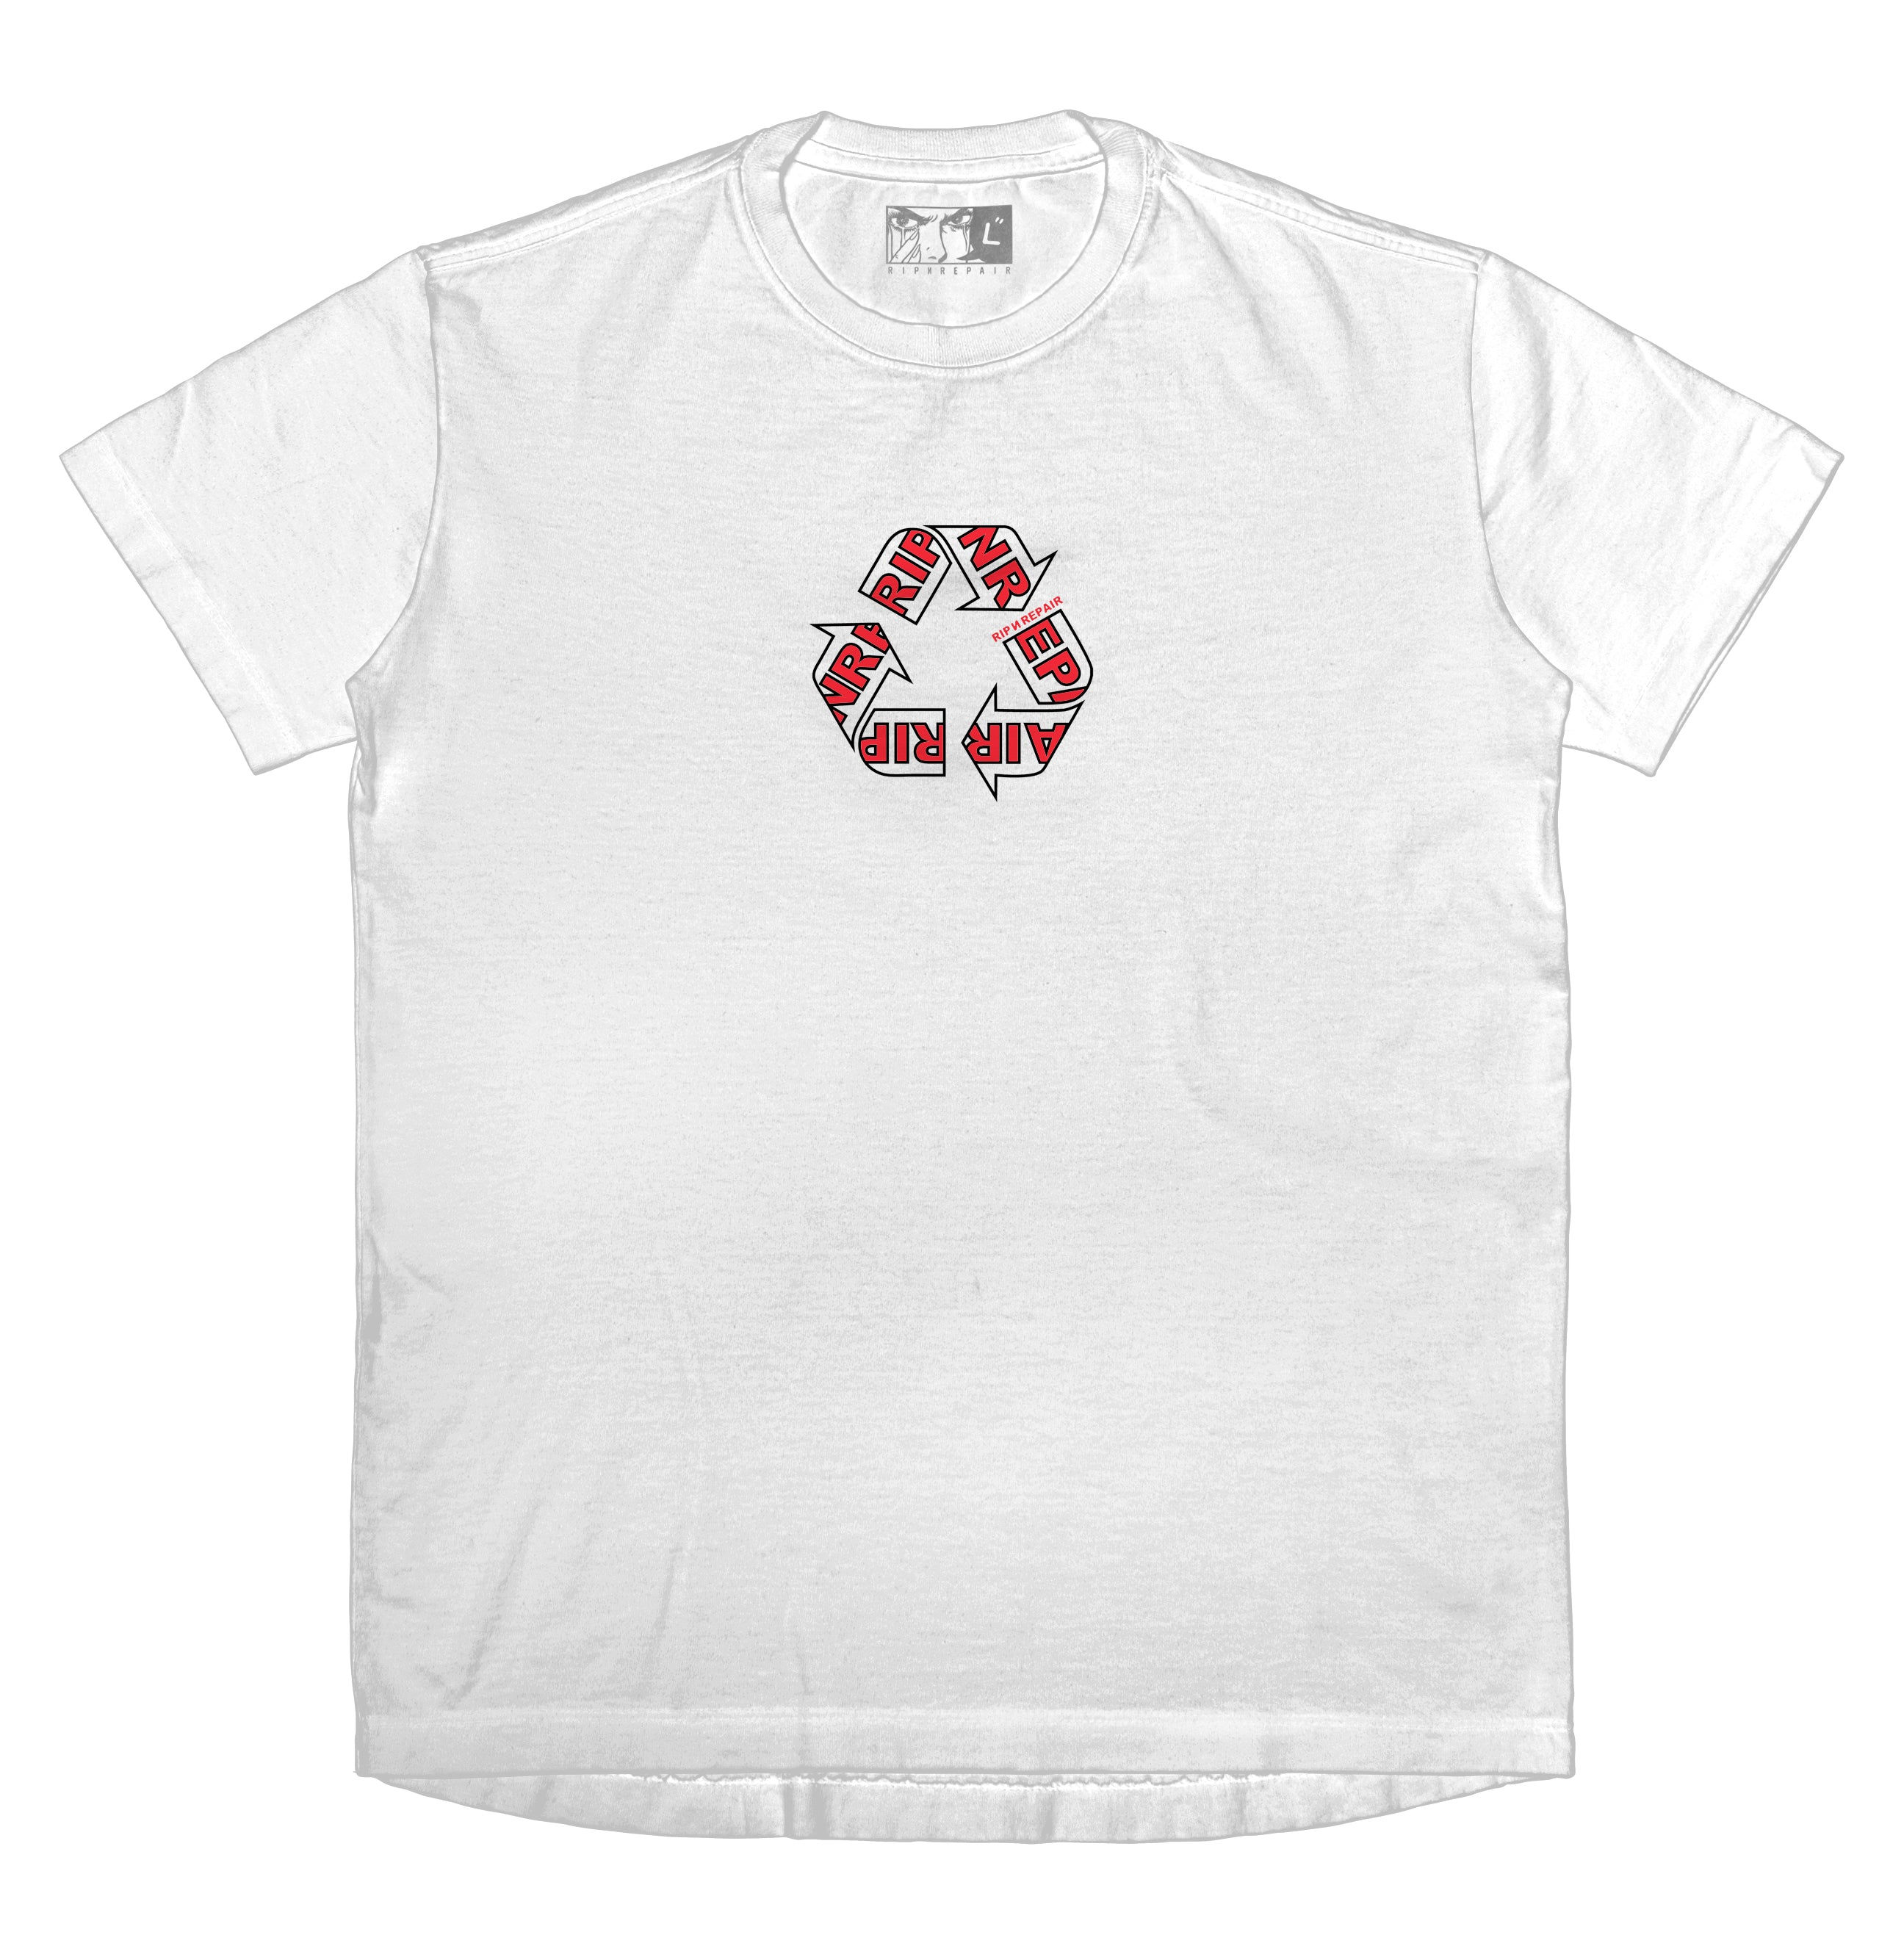 WORK IN PROGRESS - T-Shirt (White) - RIPNRPR